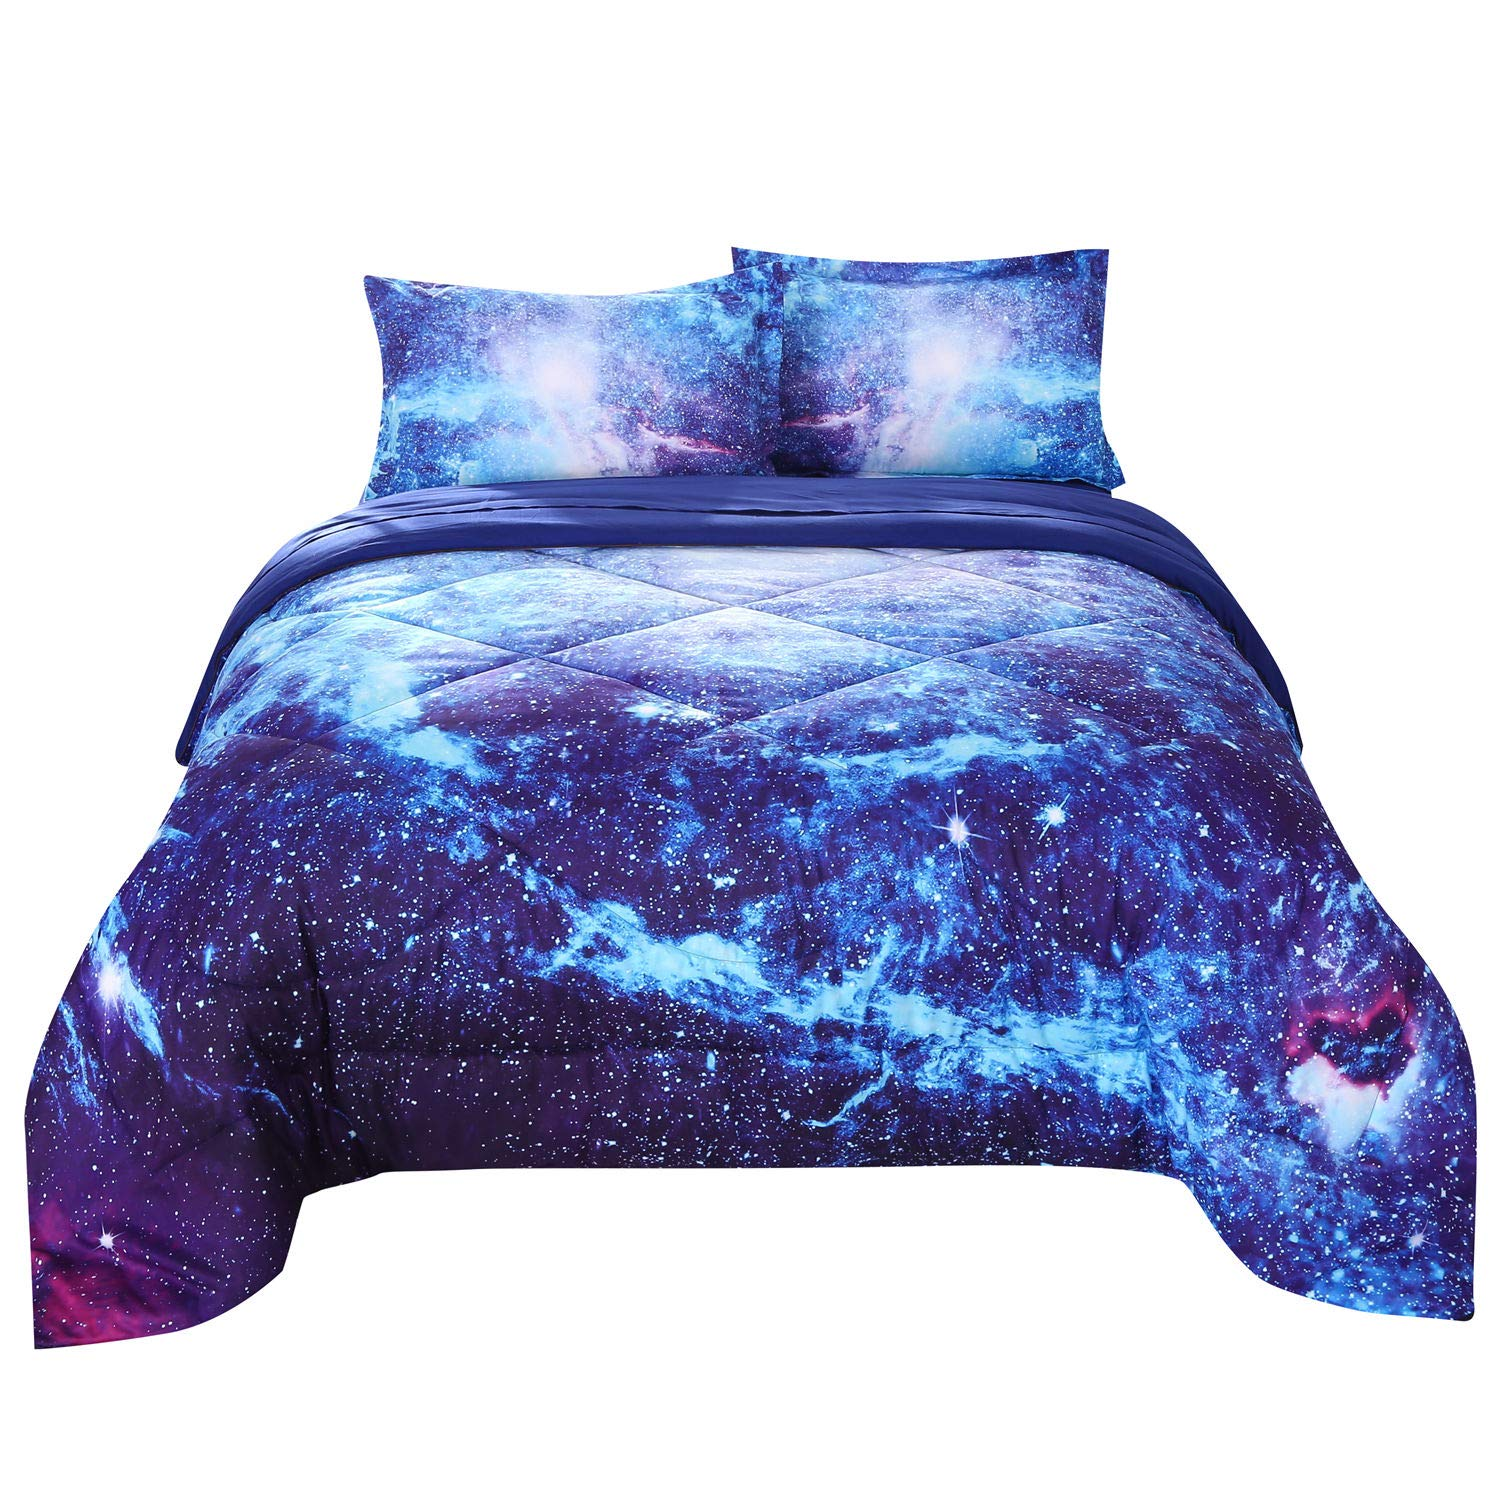 Wowelife Galaxy Comforter Sets Twin 3D Outer Space Blue Bedding Sets Mysterious Sky Cosmos Night 5 Piece with Print Comforter for Kids(Twin-5 Piece, Blue Galaxy)